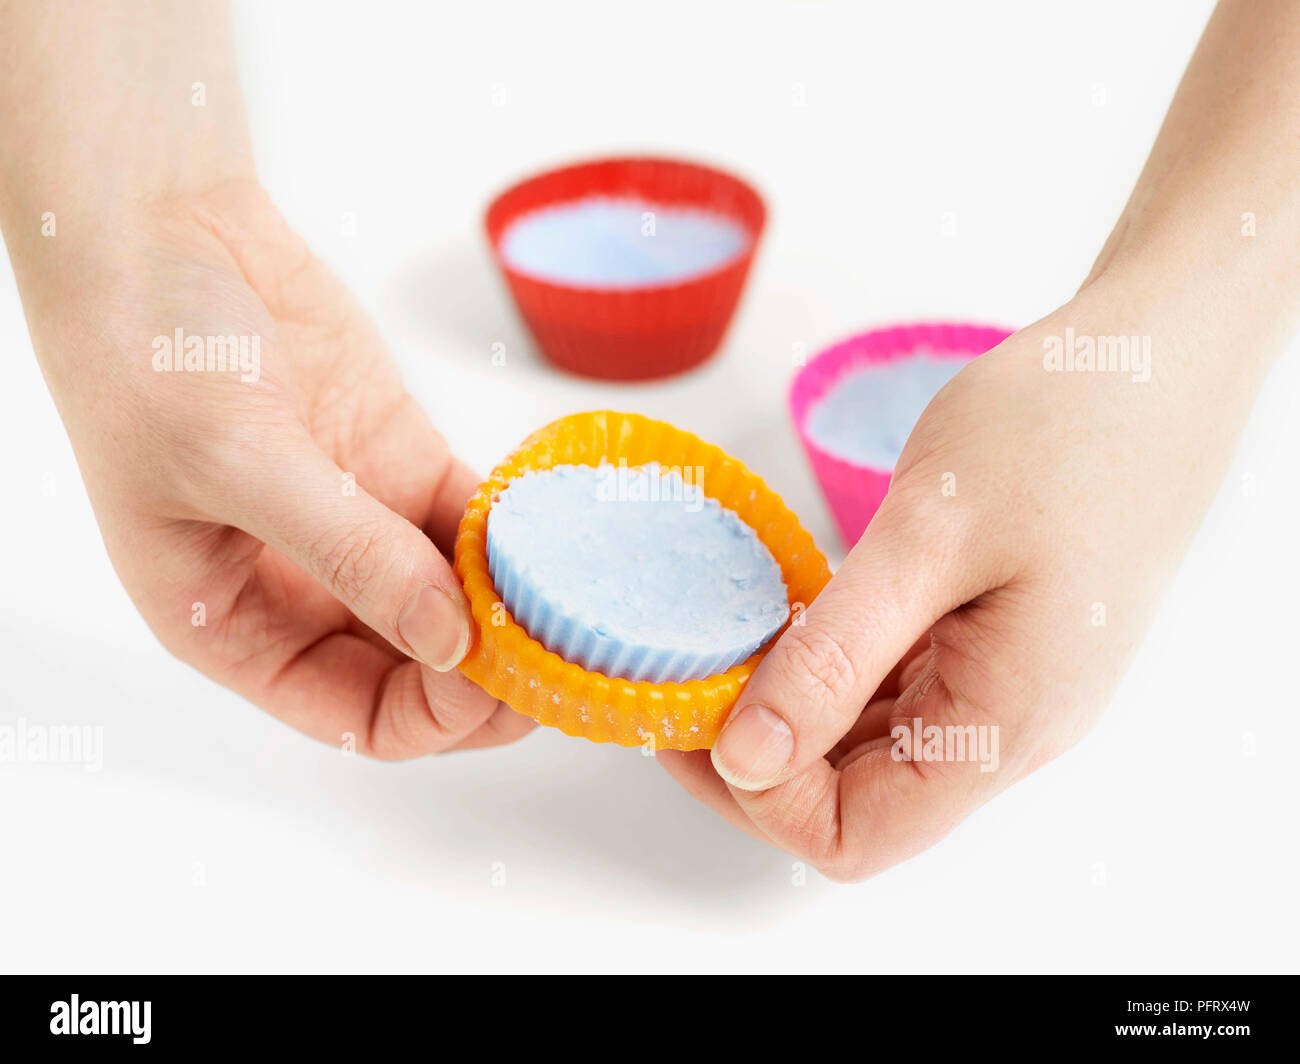 Step by step how to make bath bombs. Step 10, remove the bath bombs from the mould. - Stock Image